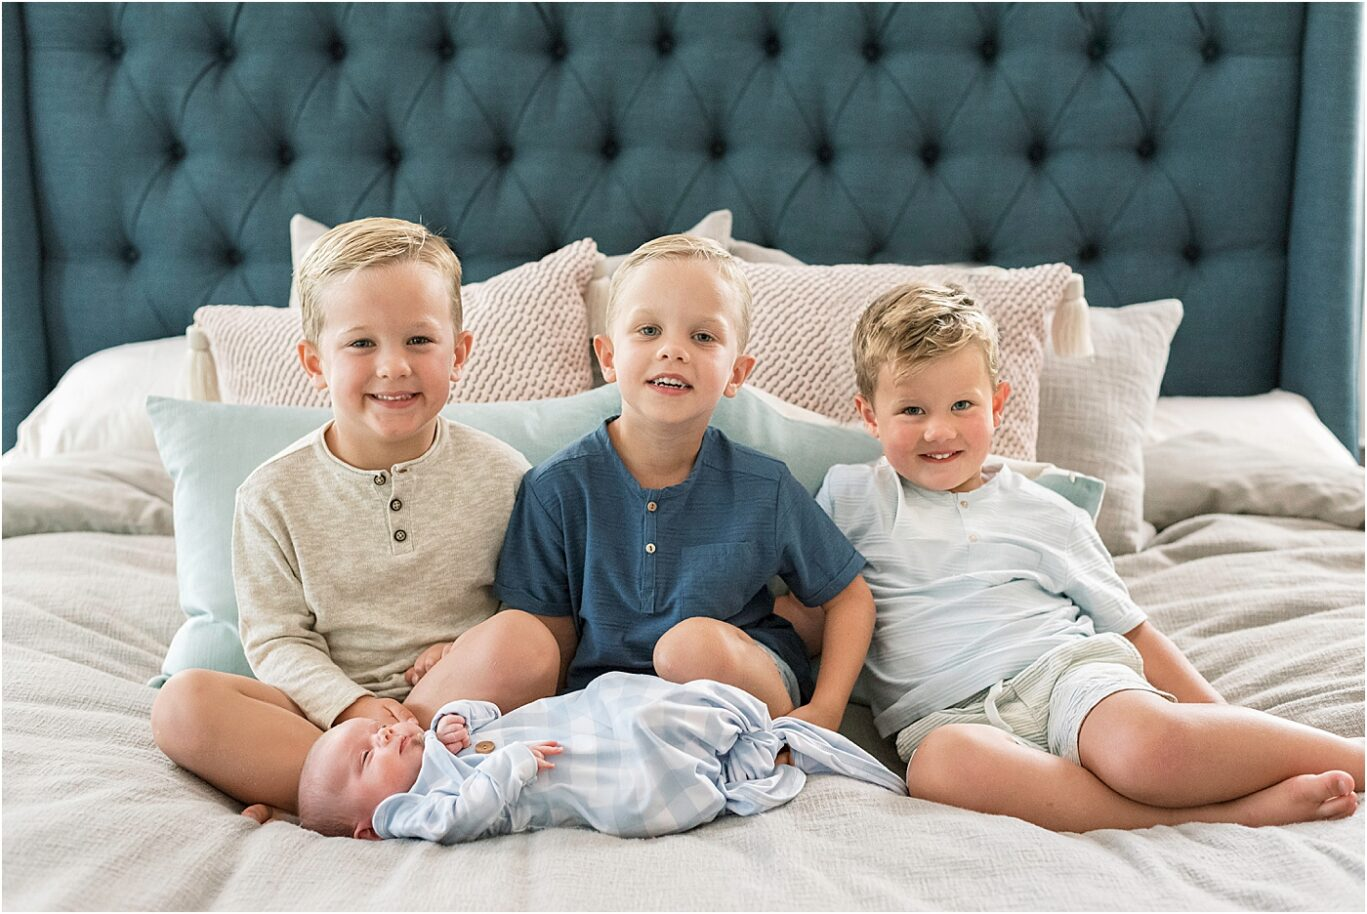 Lifestyle newborn photoshoot with four brothers! Photos by Lindsay Konopa Photography.